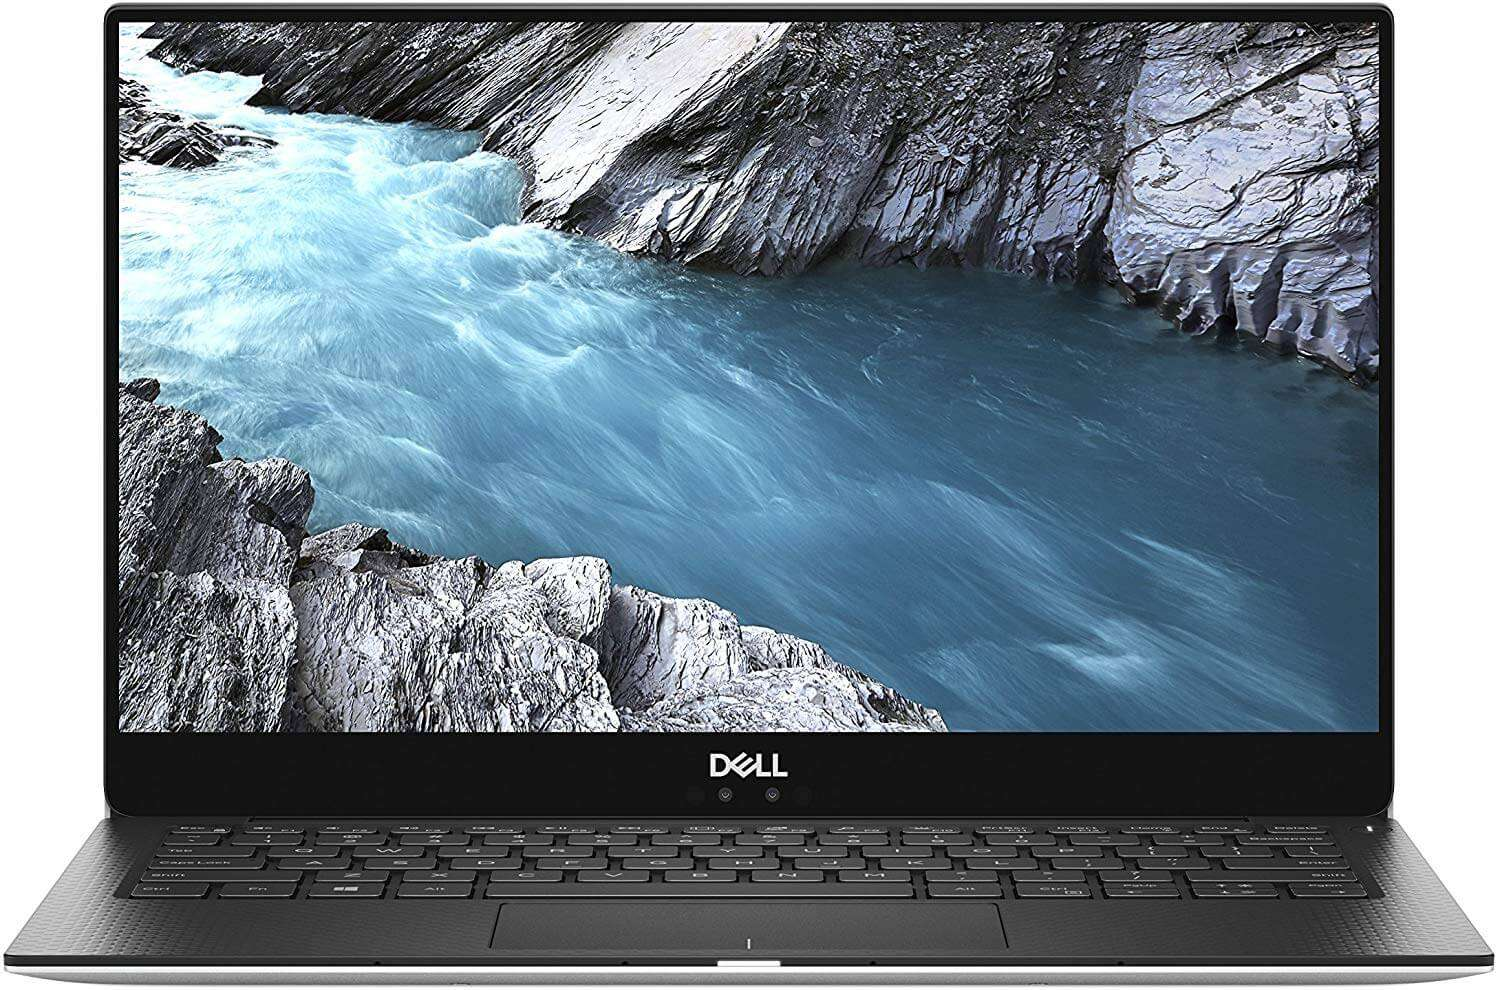 DELL XPS 9370 With 13.3-Inch Display, Core i7 Processor/8GB RAM/256GB SSD/Intel UHD Graphics 620 Silver